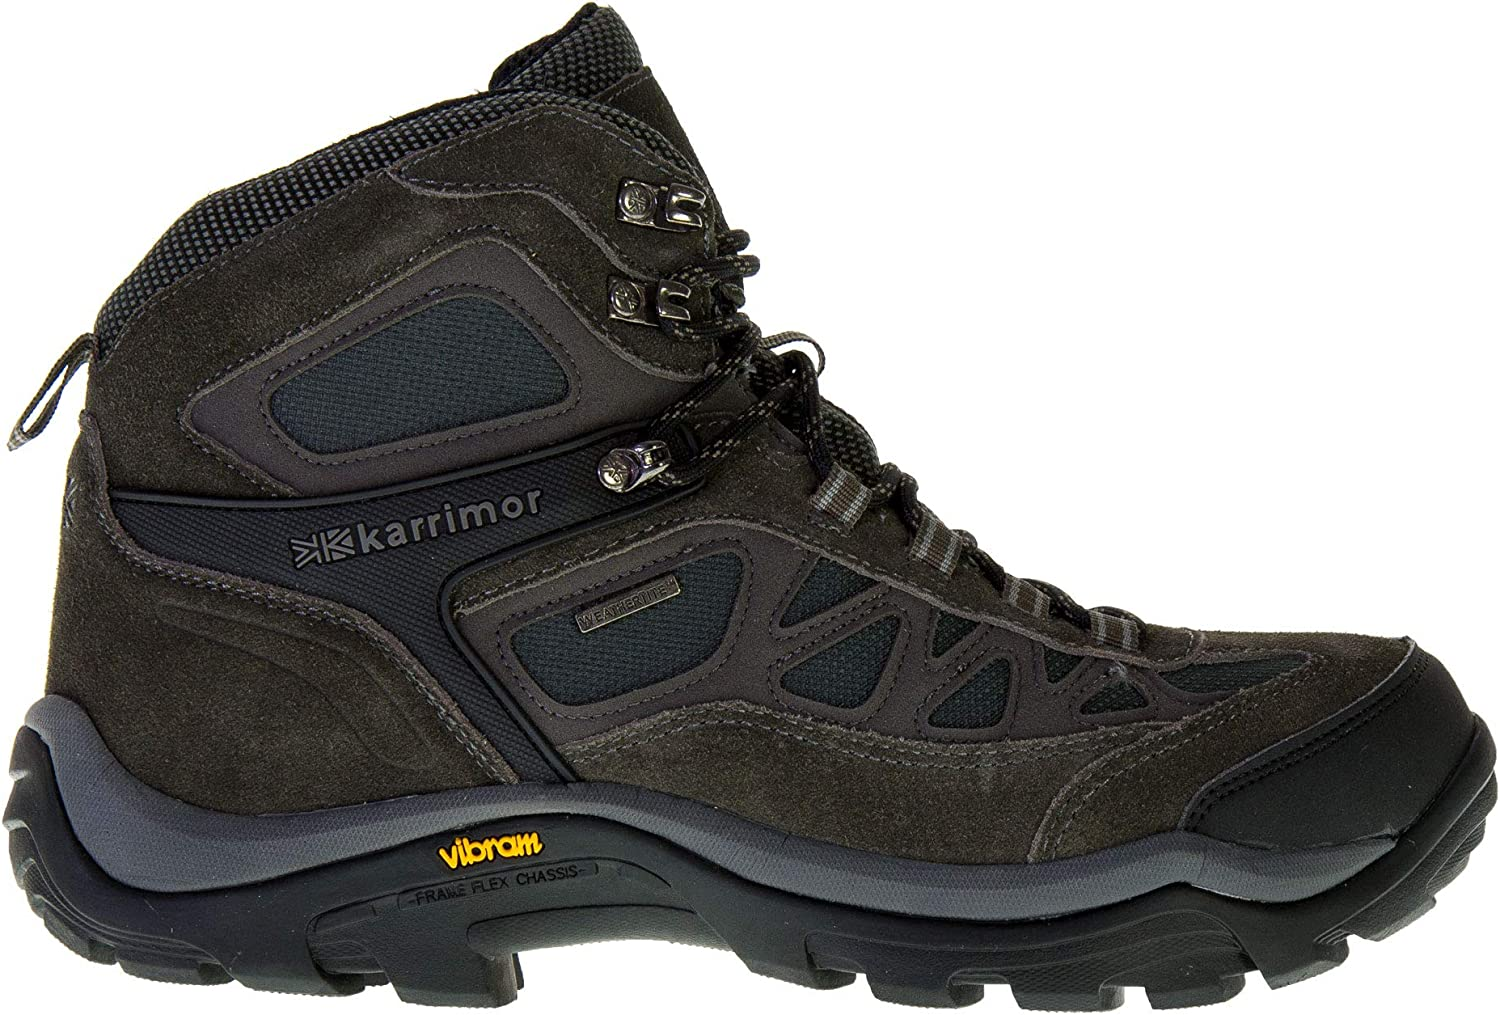 Karrimor Men's's Denver 2 Wt High Rise Hiking Boots